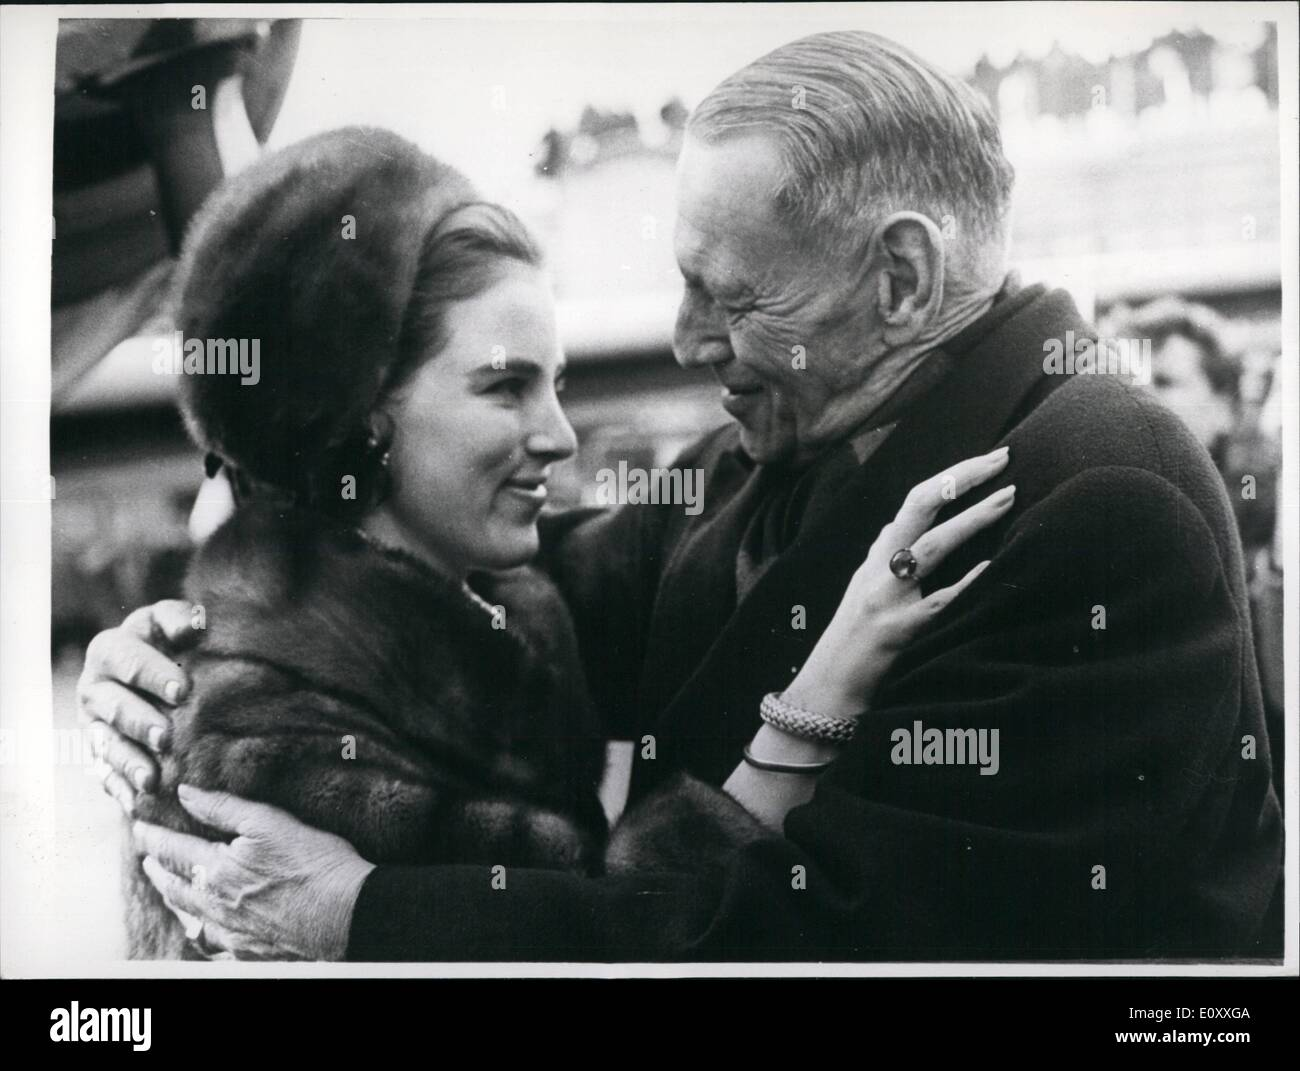 Jan. 01, 1968 - Exiled Queen Anne-Marie returns home to Denmark.: Exiled Queen Anne-Marie of Greece, returned to home to Denmark yesterday for the first time in 18 months. The 21-year old Queen arrived in Copenhagen from Rome to attend the wedding of her elder sister, Princess Benedikte on February 23rd. Photo shows King Frederik of Denmark welcomes dis daughter, Queen Anne Marie of Greece, at Copenhagen airport yesterday. - Stock Image